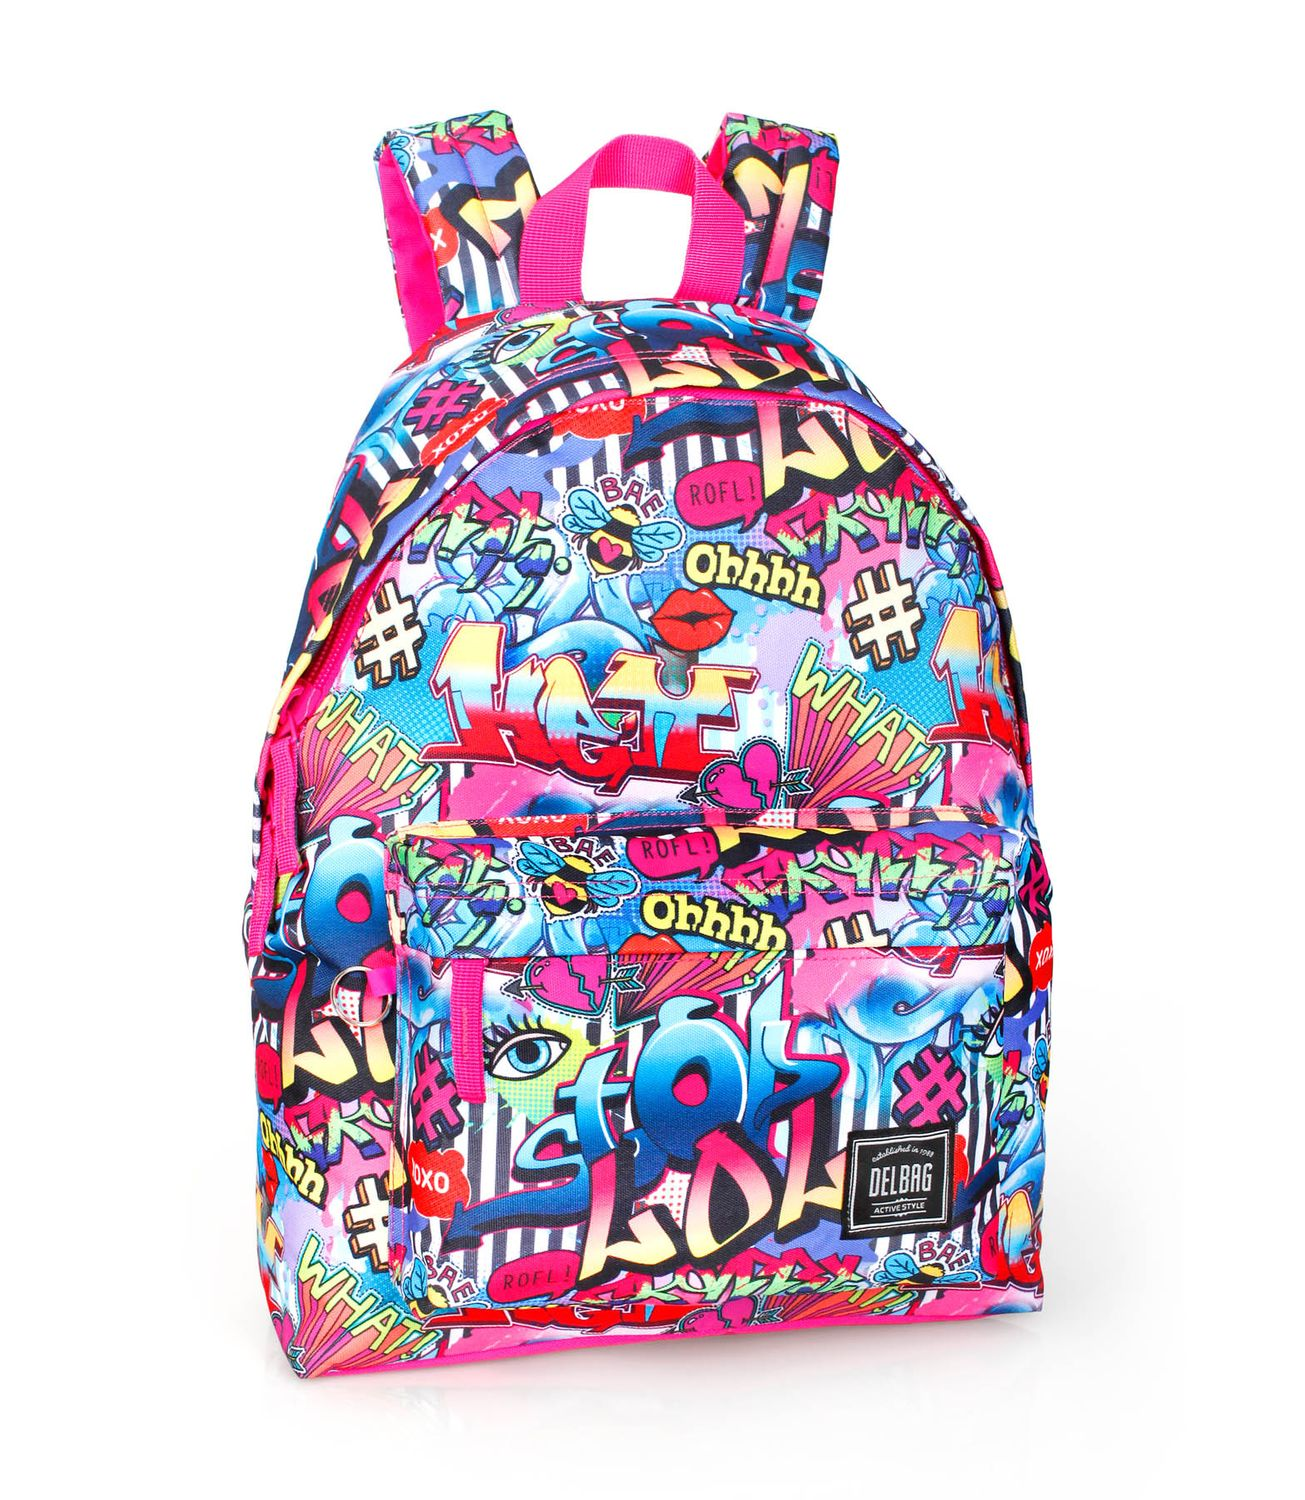 Backpack Rucksack GRAFFITI Hashtag – image 1